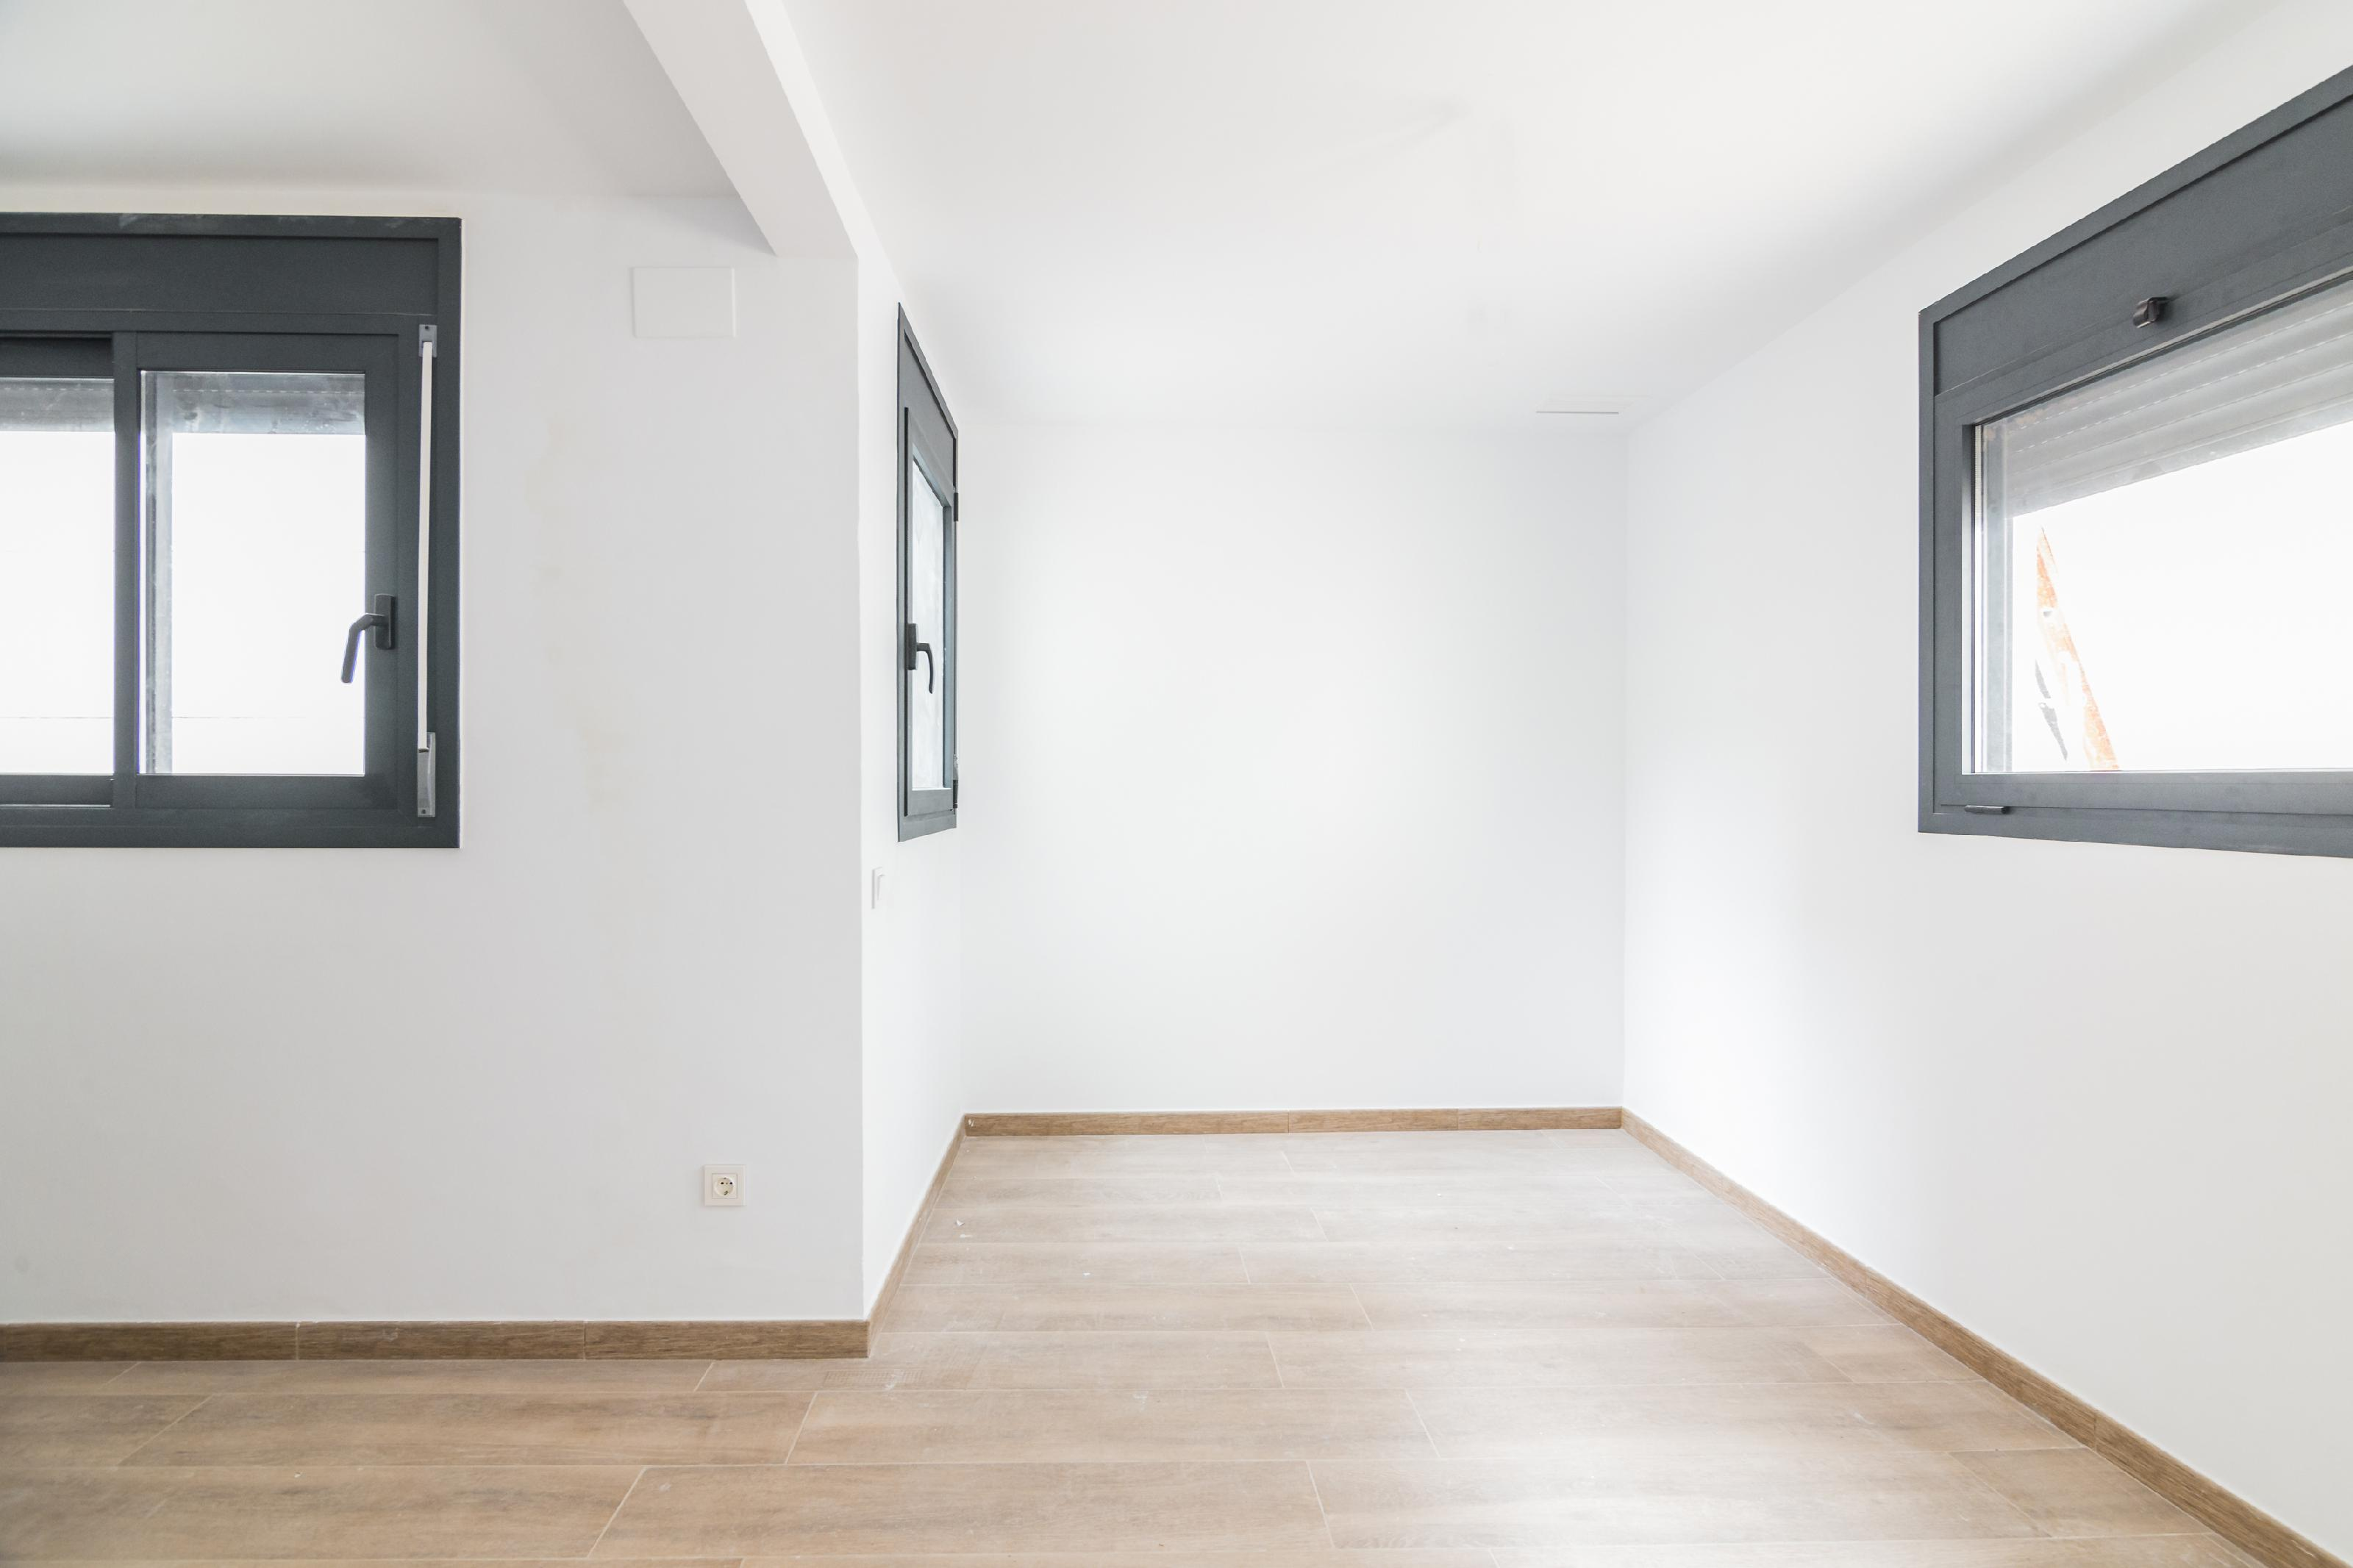 220653 Penthouse for sale in Sarrià-Sant Gervasi, Sant Gervasi-Galvany 8